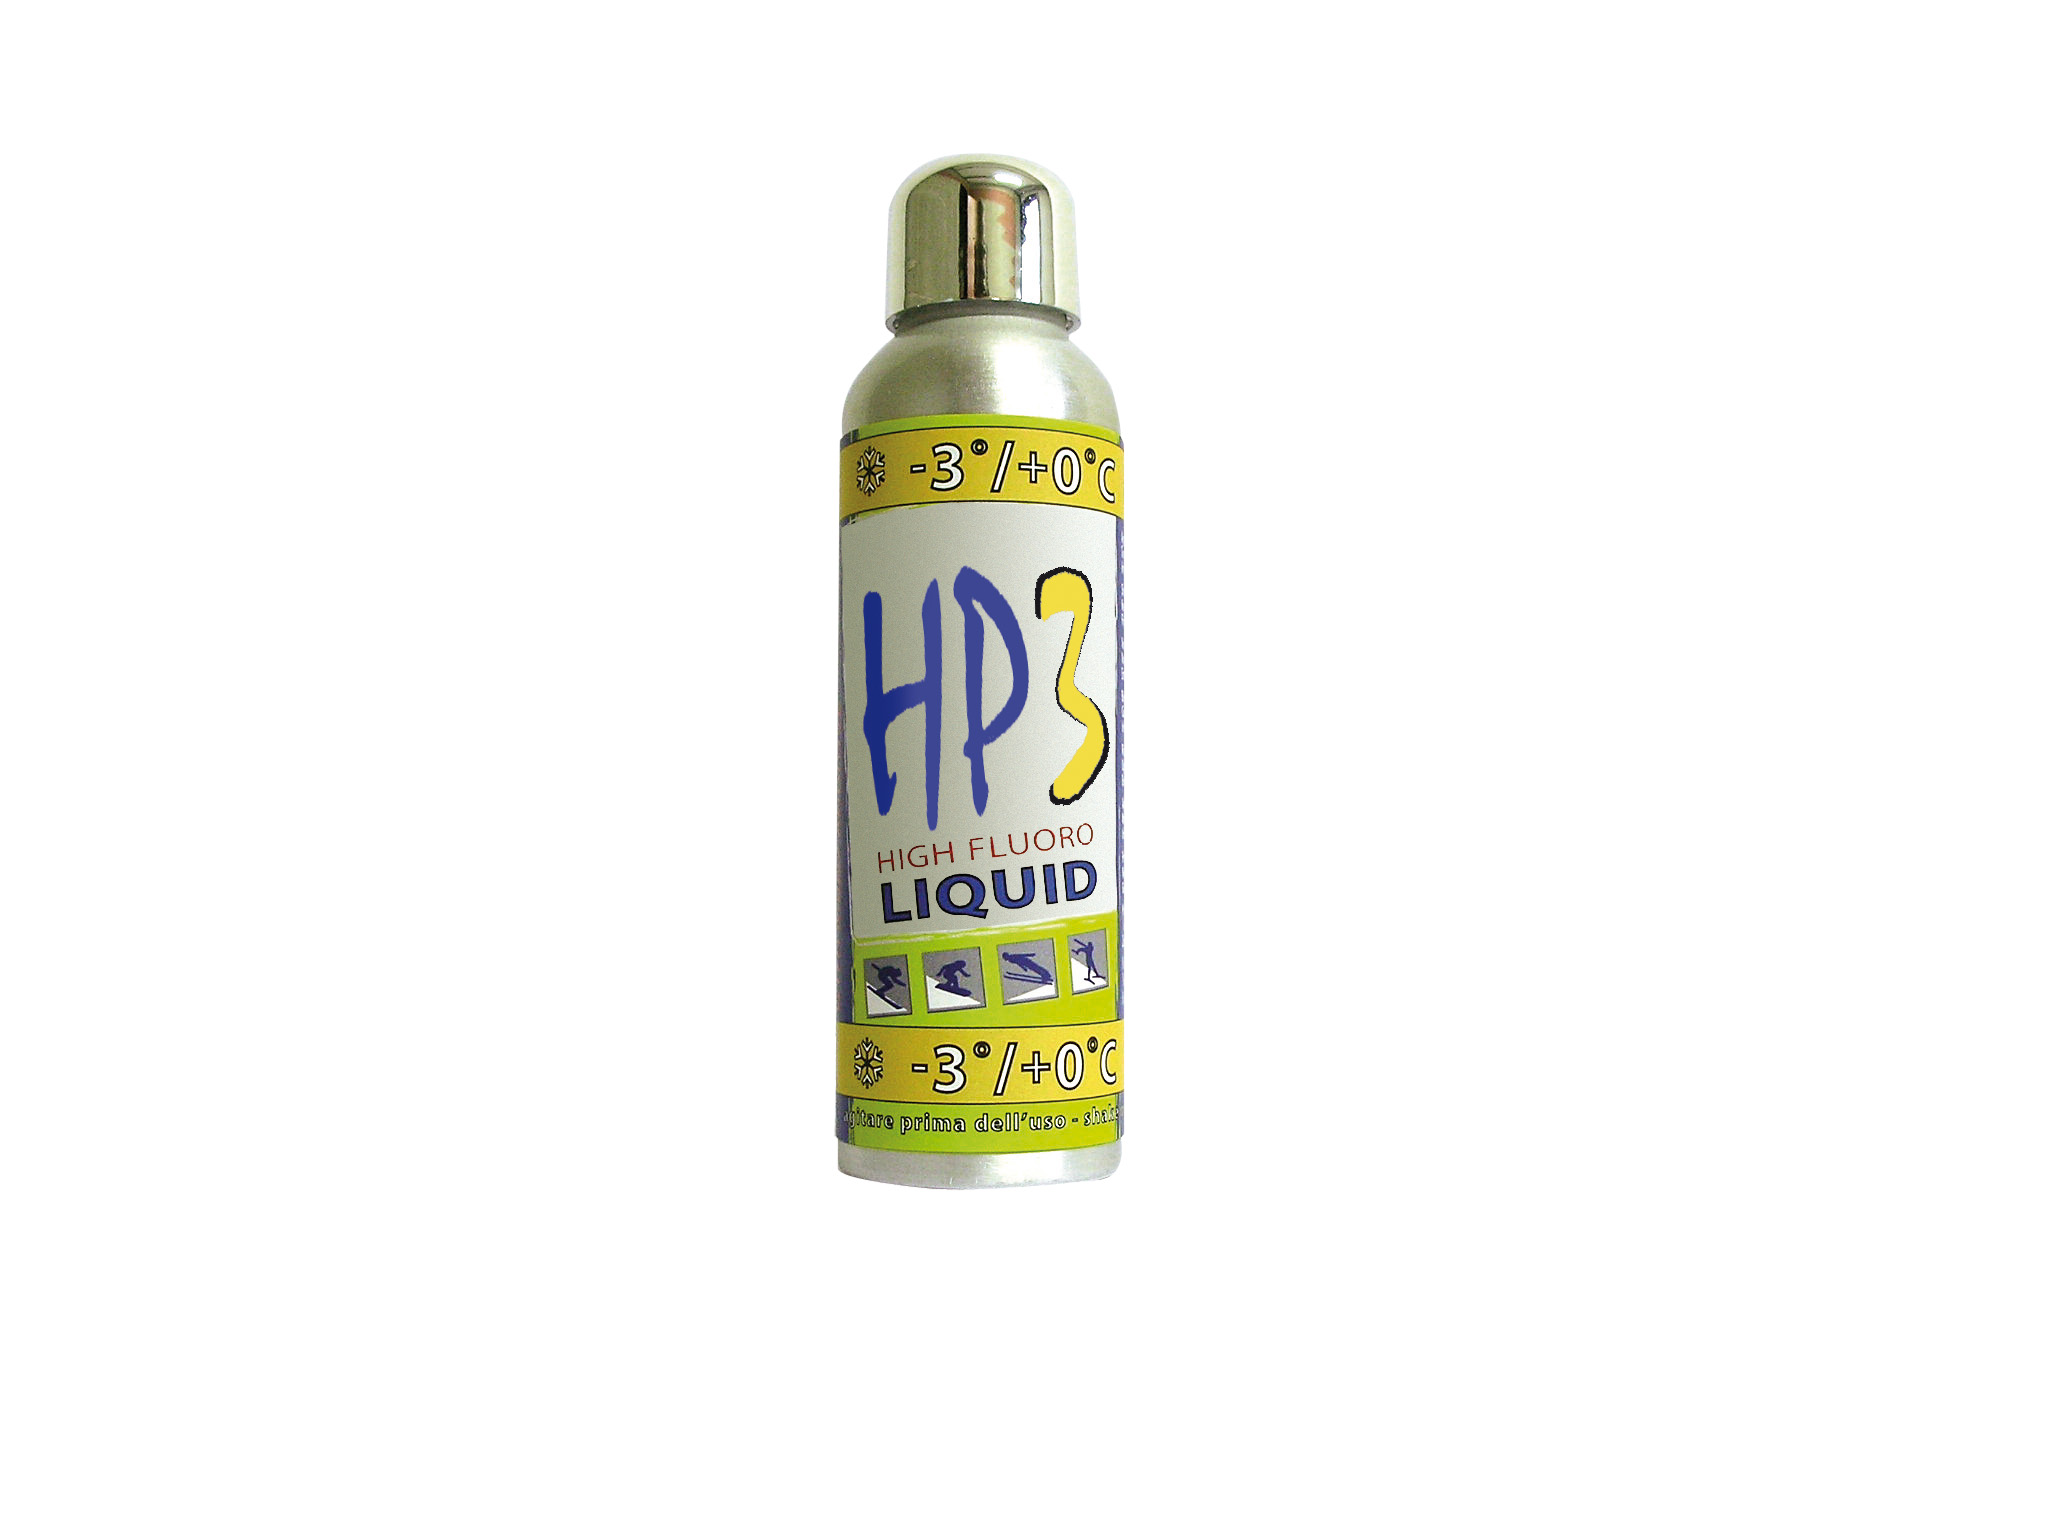 náhled BRIKO MAPLUS HP3 LIQUID HIGH FLUORINATED HOT 75ml